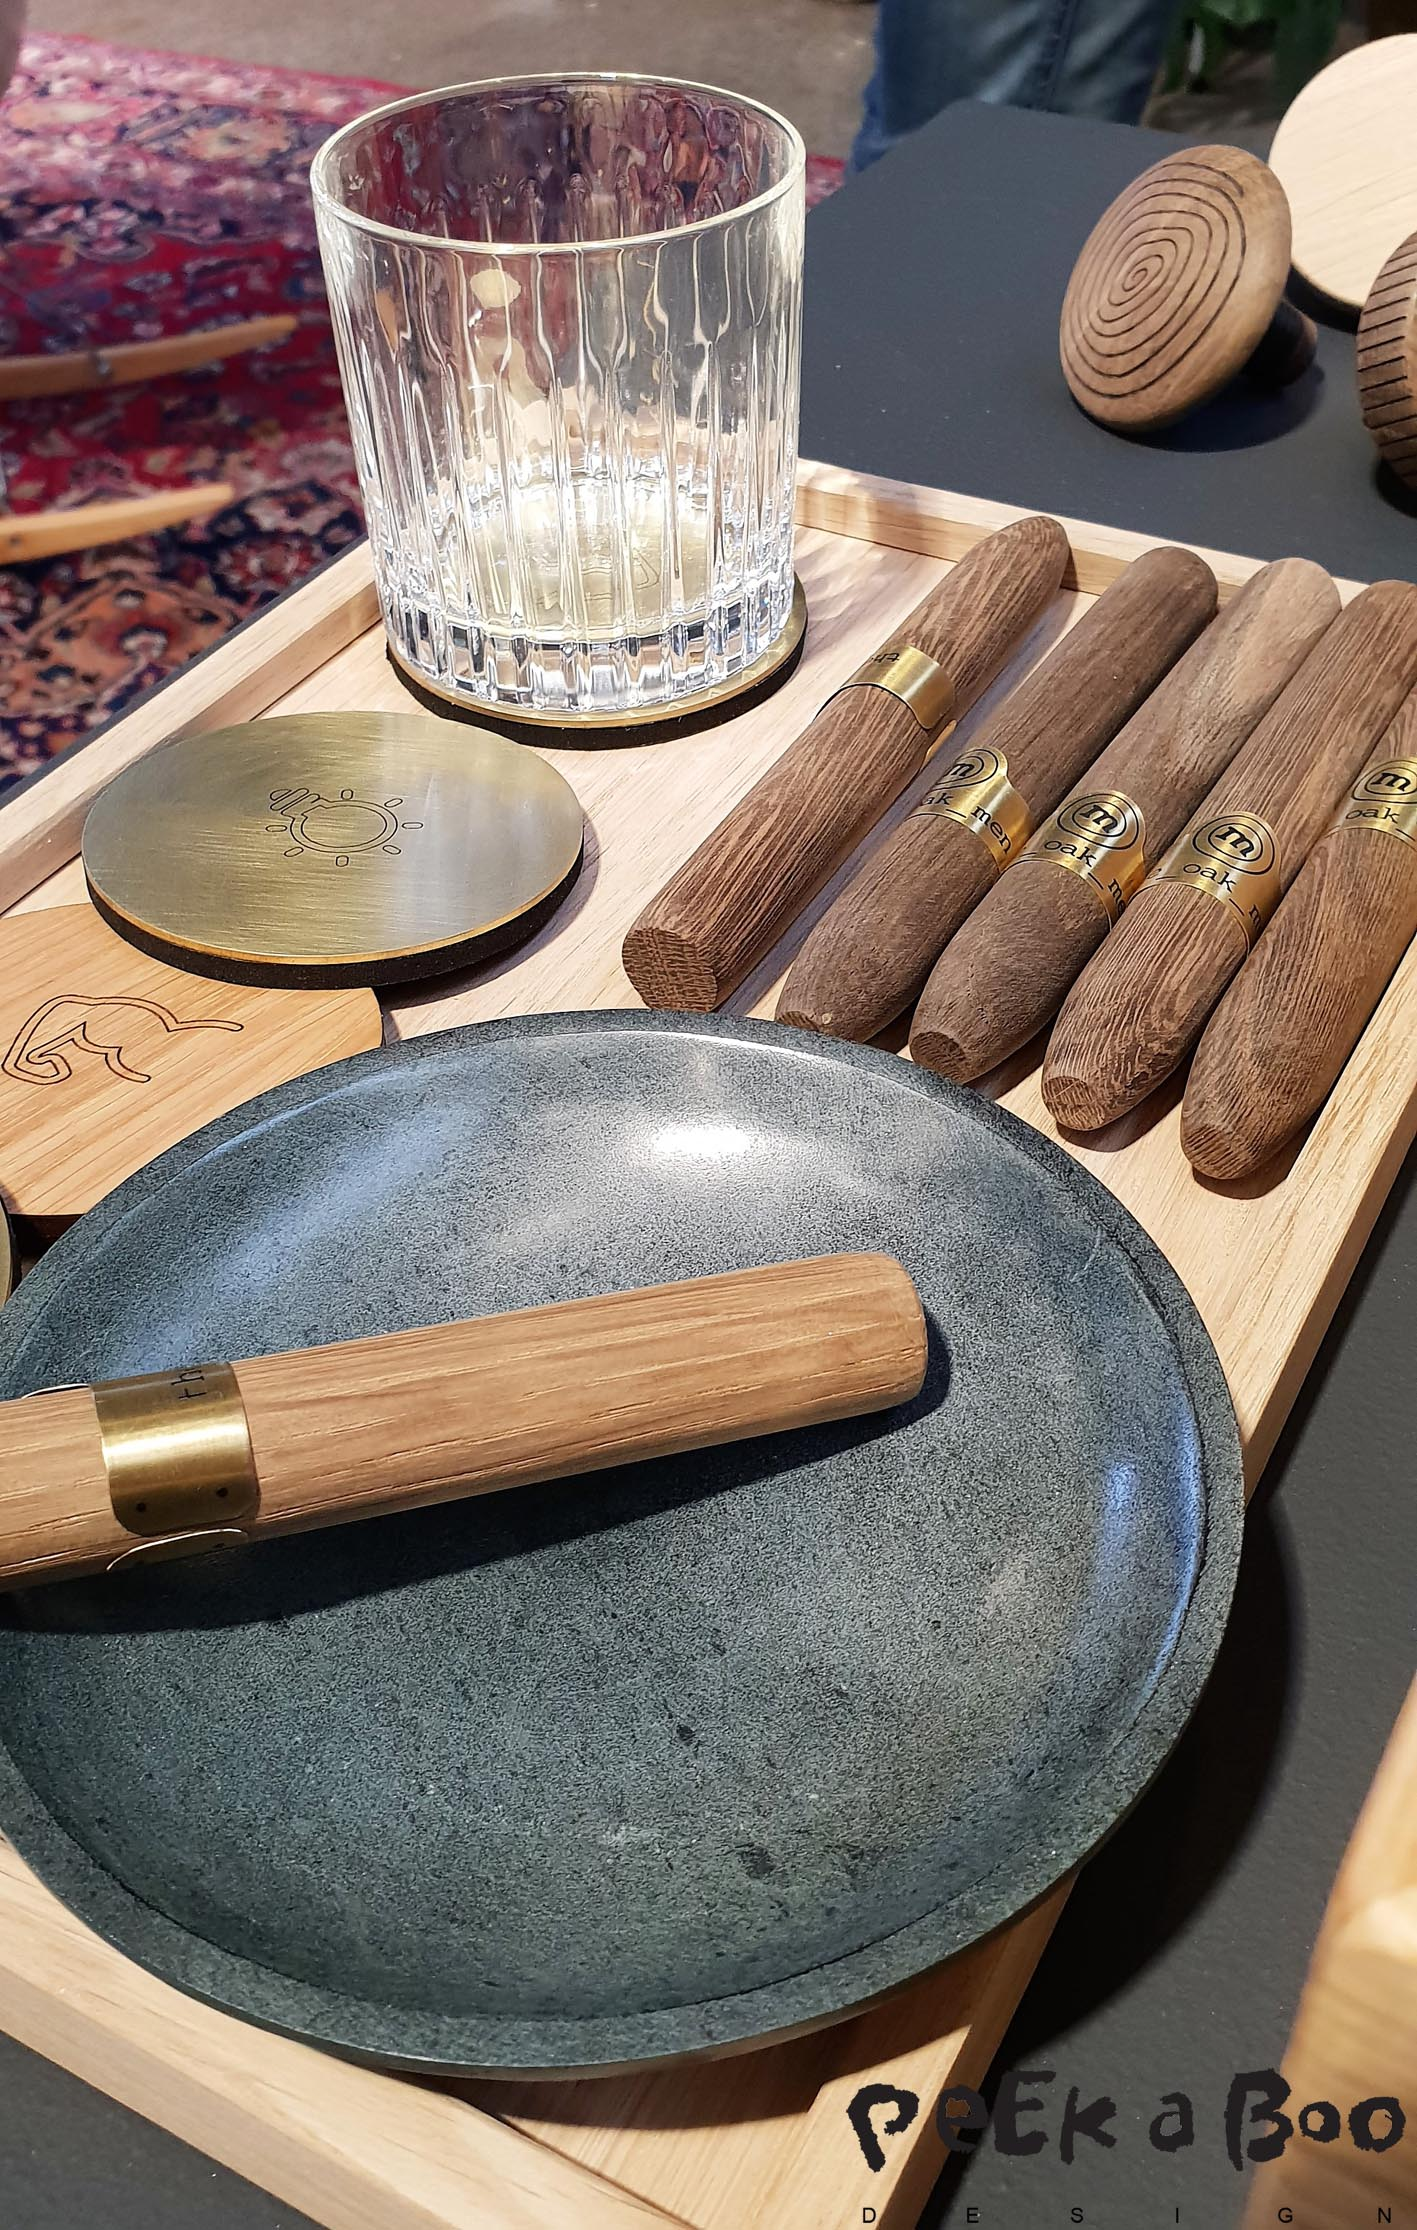 Have a cigar....it is not a Hannavian cigar but danish design cigar from Oak men.